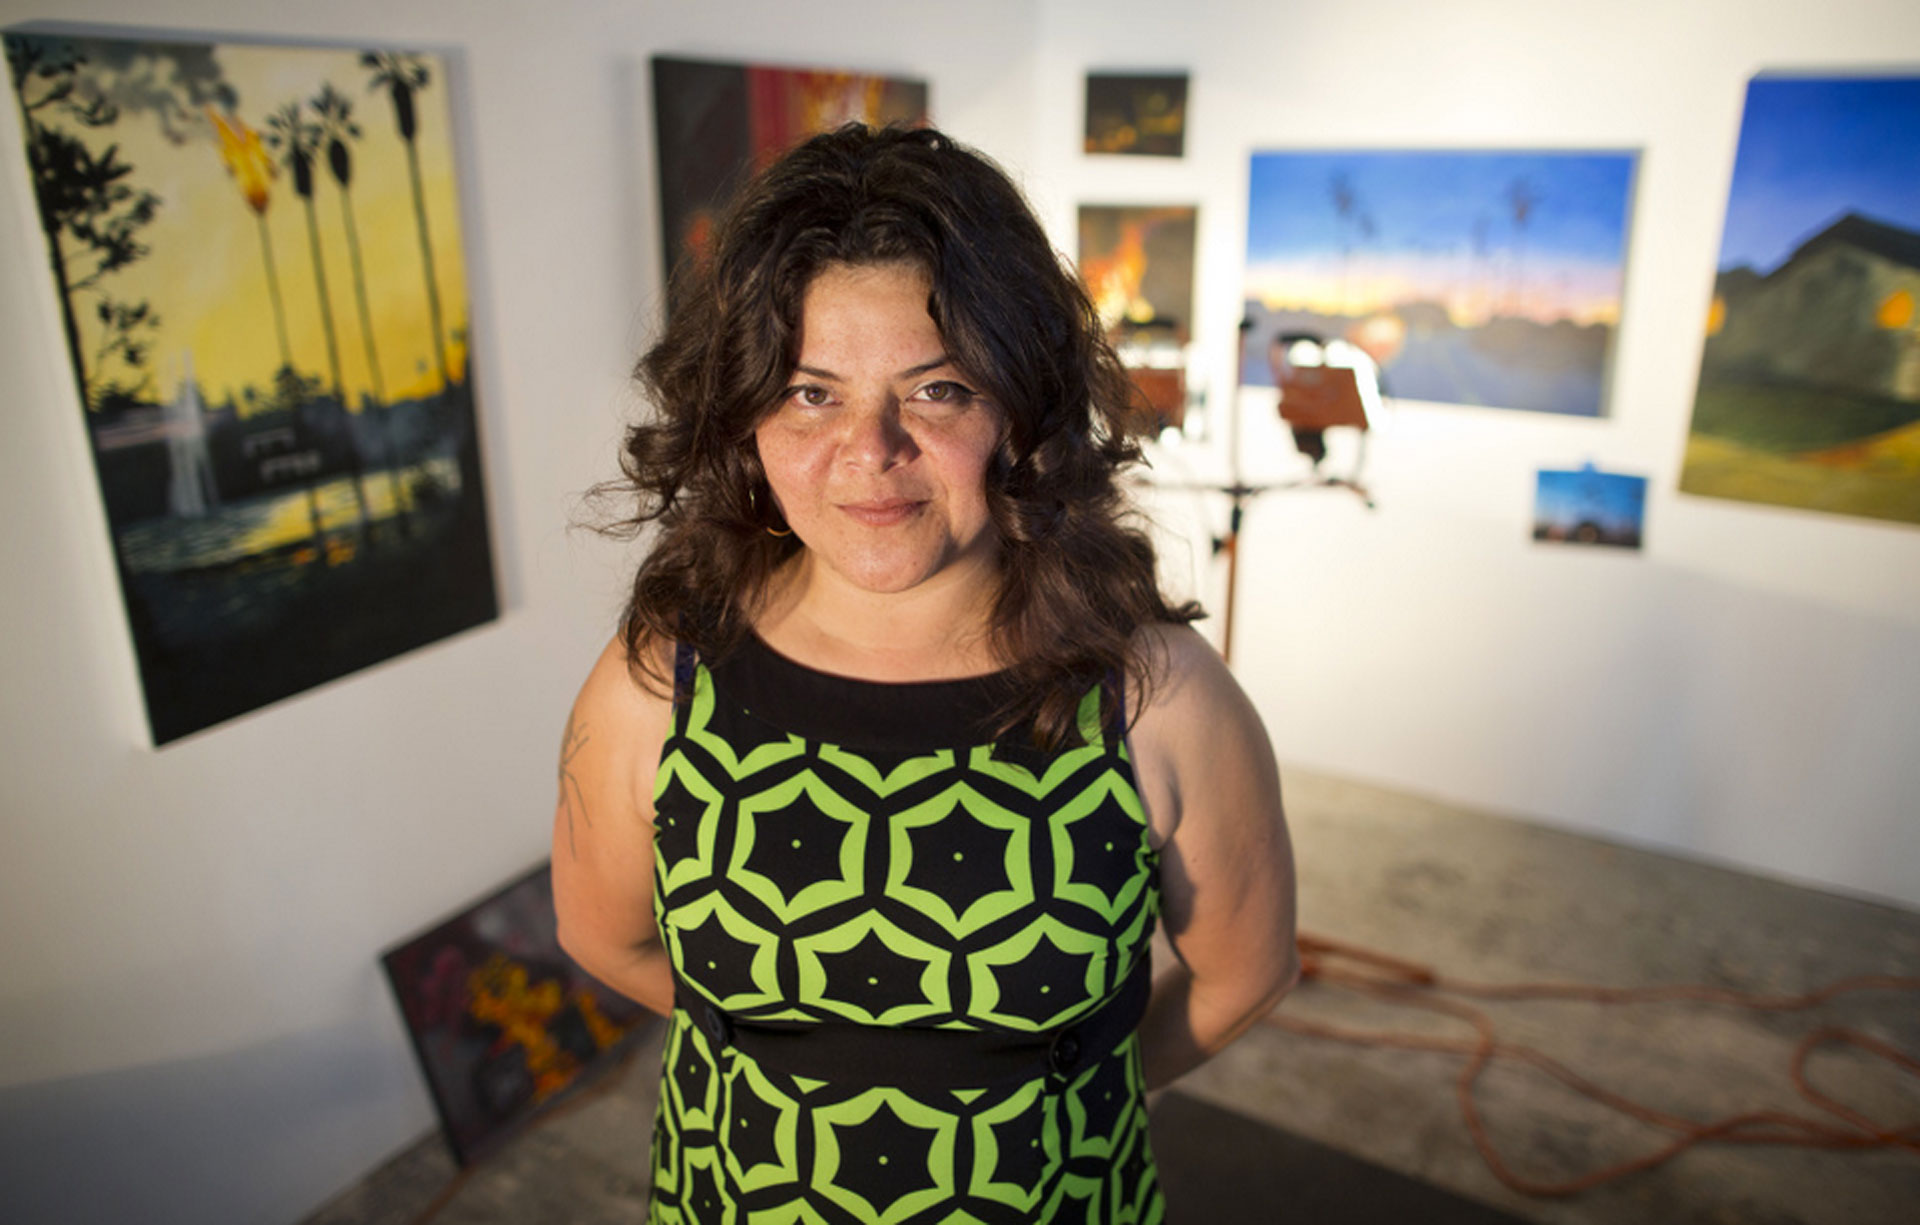 Sandy Rodriguez is an artist in residence at Art + Practice in Leimert Park. Rodriguez is currently working on paintings inspired by social unrest in Ferguson, Mo., Mexico City, and Los Angeles.